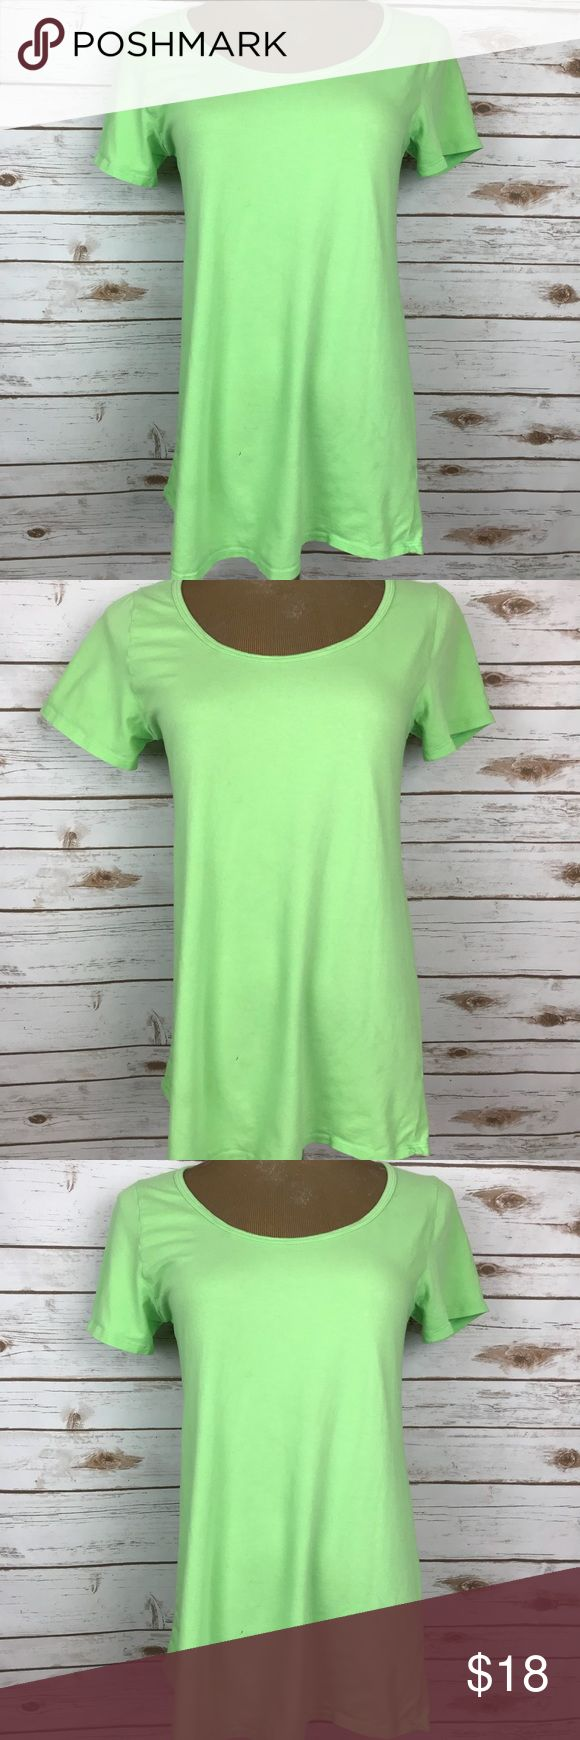 """LulaRoe Classic Tee Solid Lime Green Shirt Blouse Size Small  Bust 17.5"""" Length Front 27.5"""" Length Back 29"""" Lime Green  Short Sleeves Hi Low Style  95% Cotton, 5% Spandex  Machine Wash Imported  In condition good  On lower front small pin hole and a couple grease spots; see photos LuLaRoe Tops Blouses"""